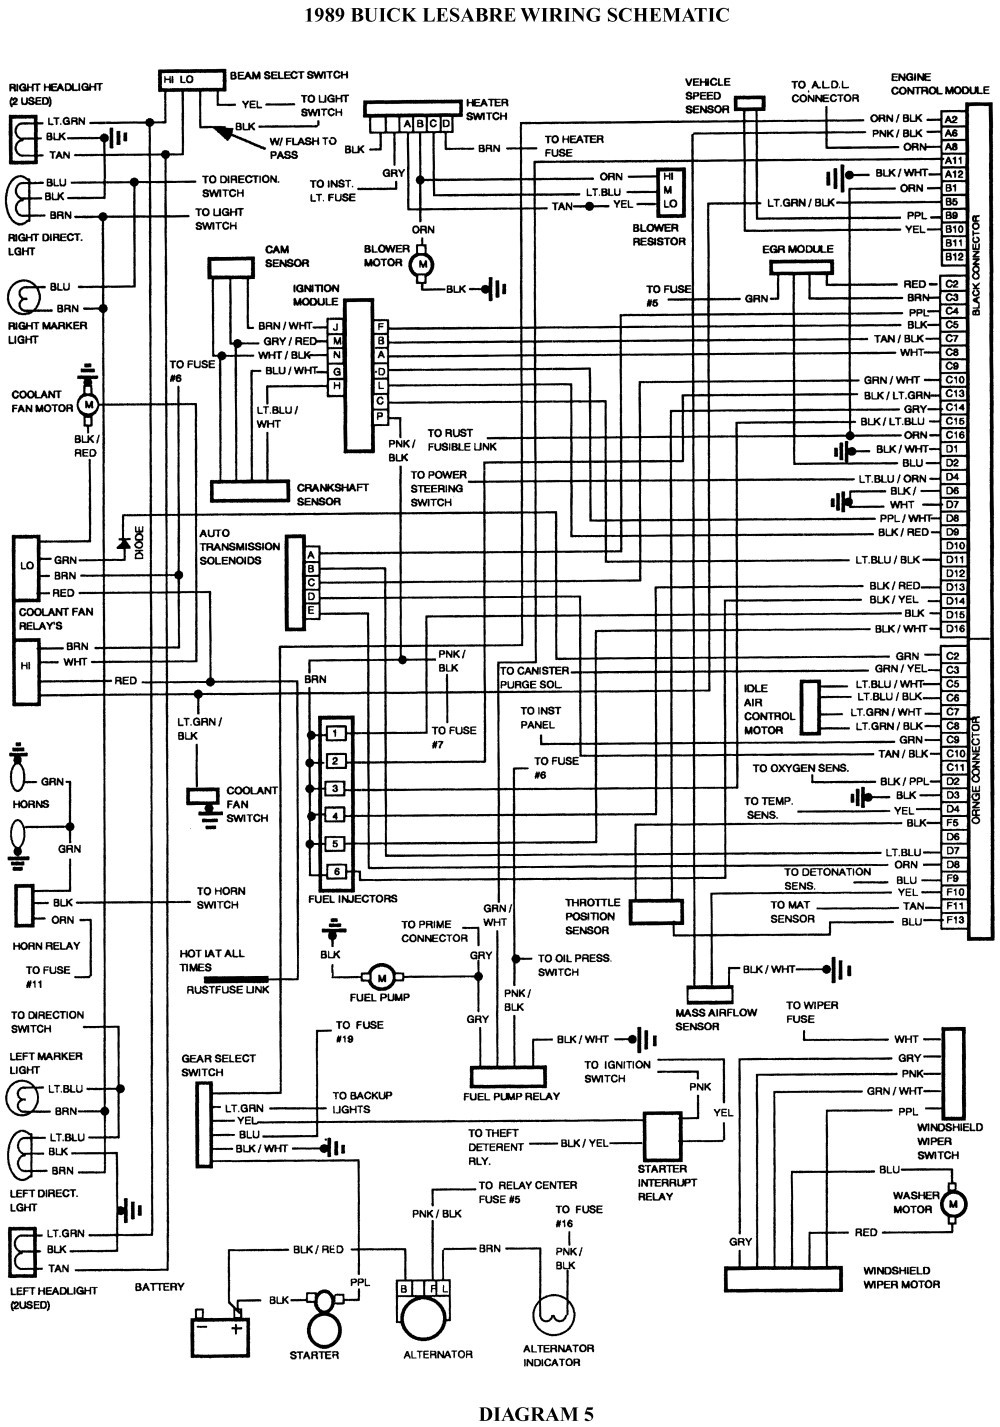 wiring diagram for 2003 pontiac bonneville